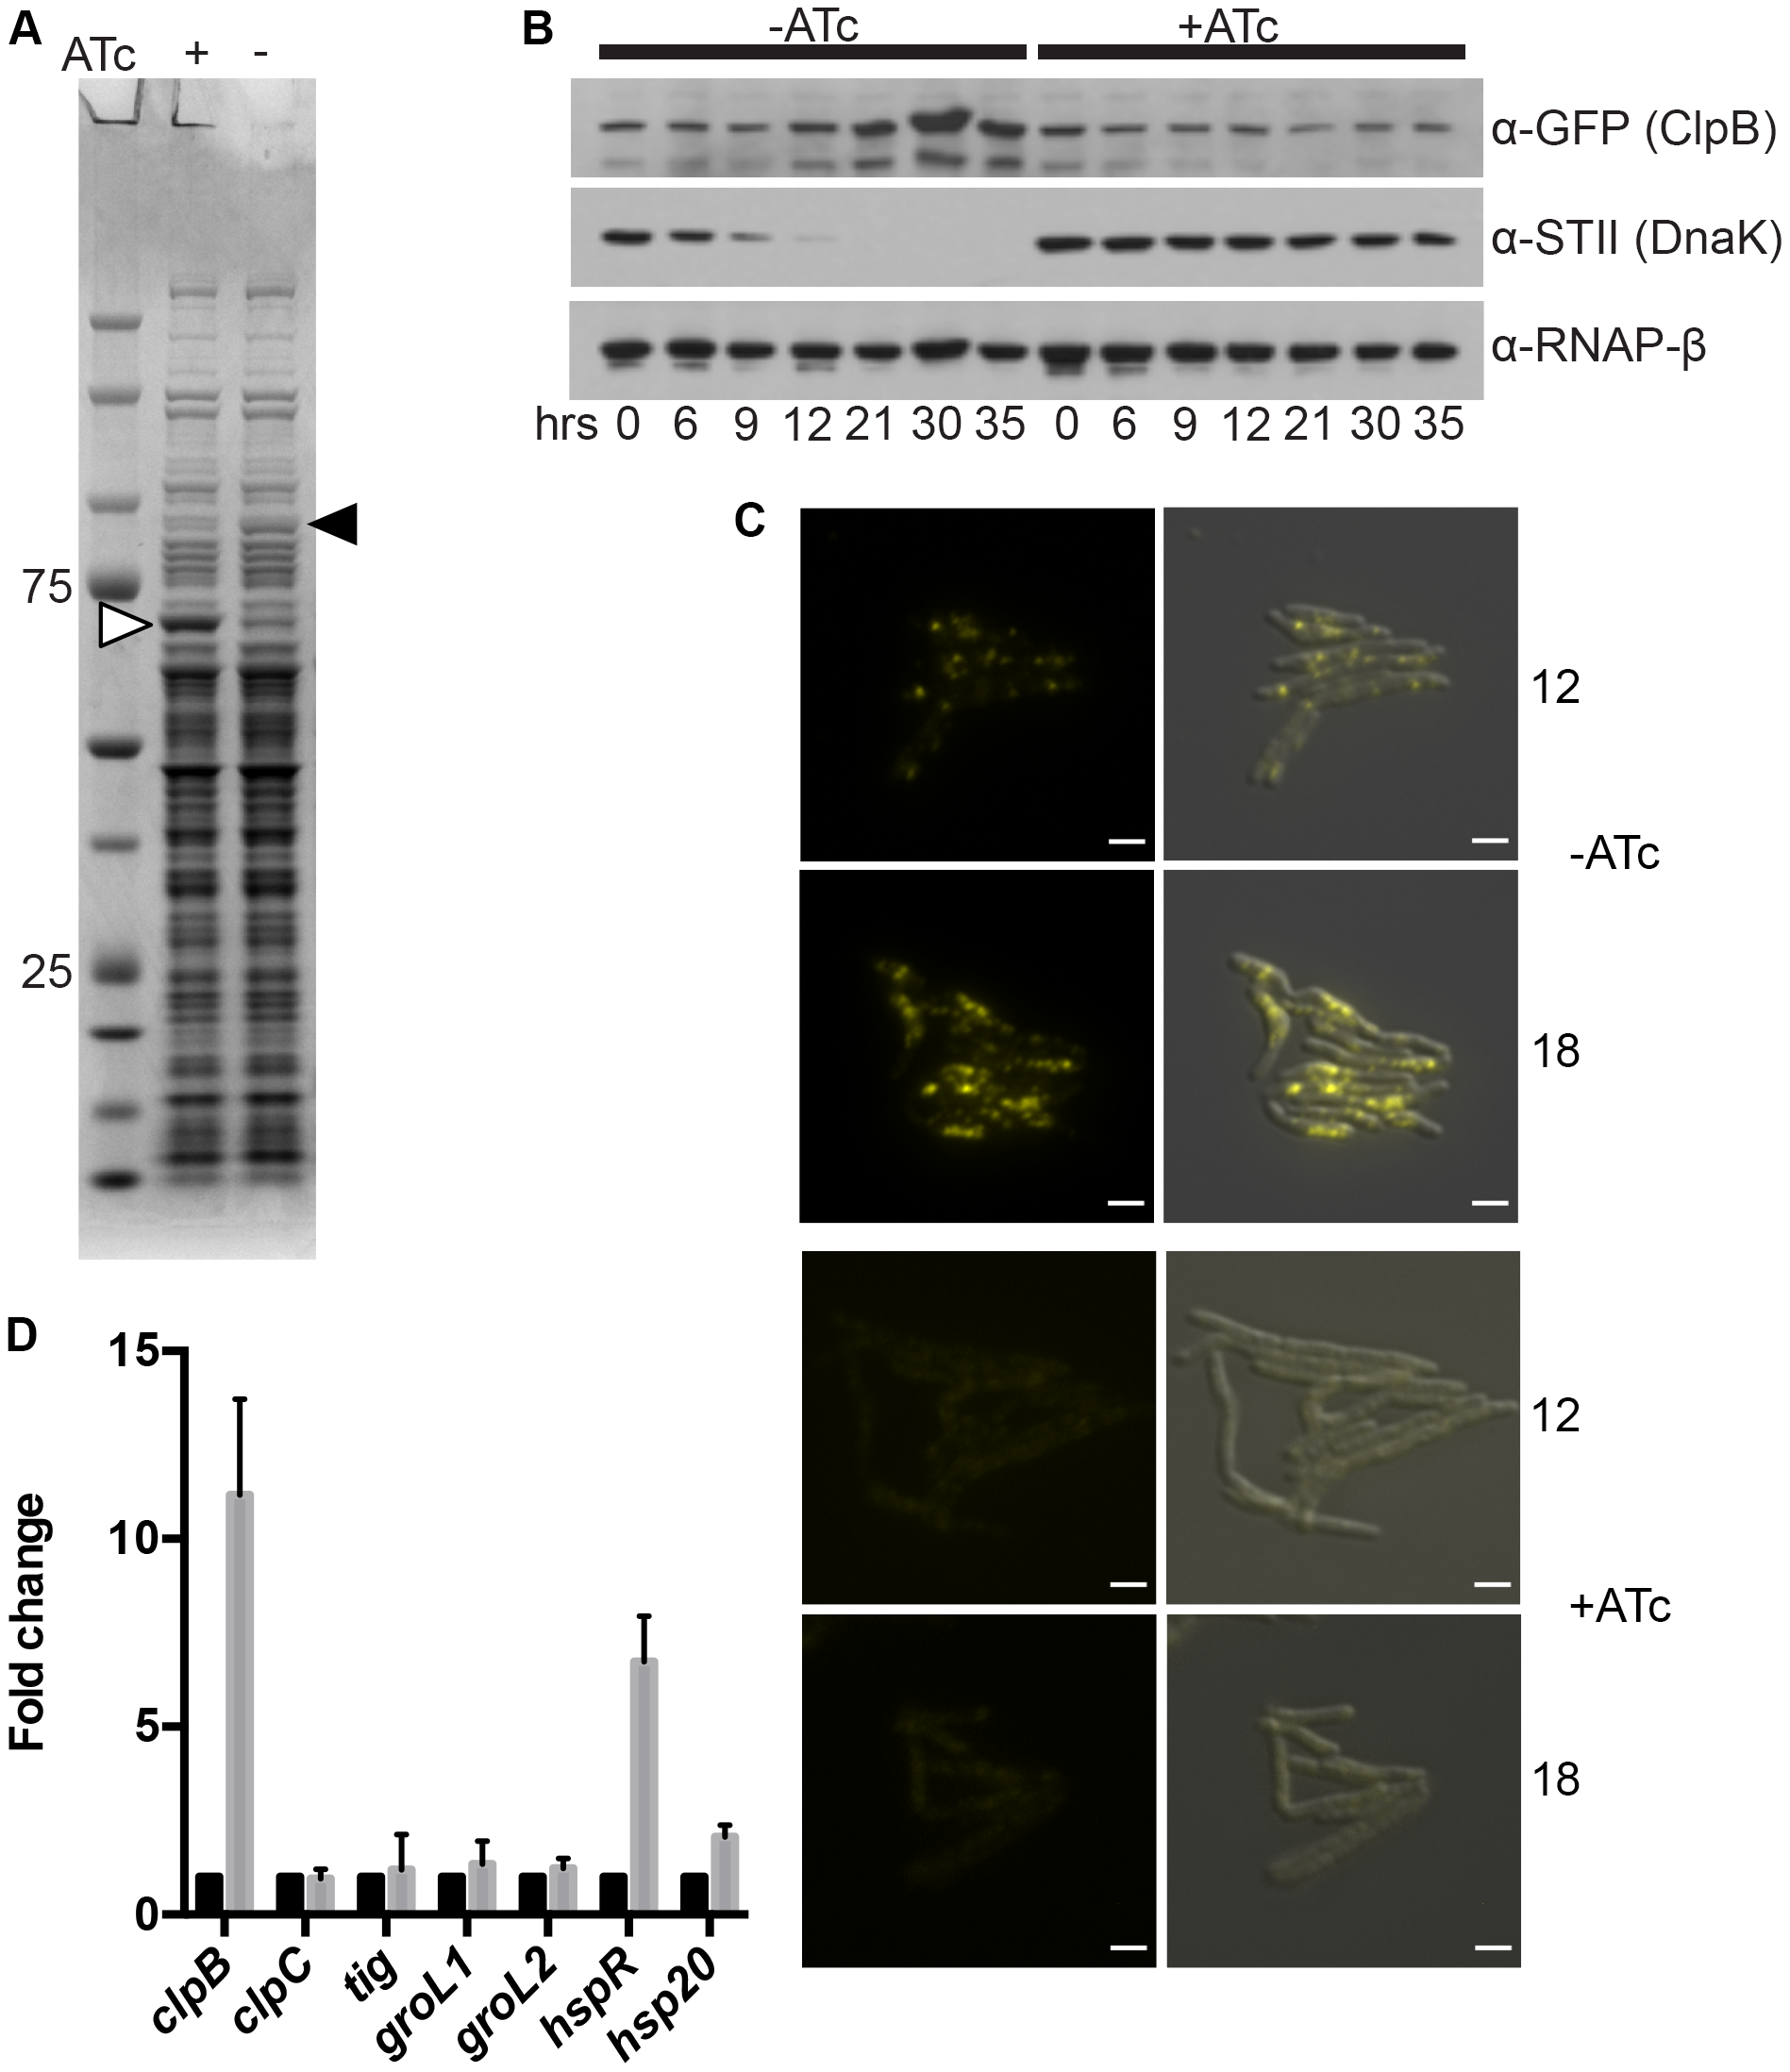 ClpB relocalizes to polar foci and is upregulated after DnaK depletion.